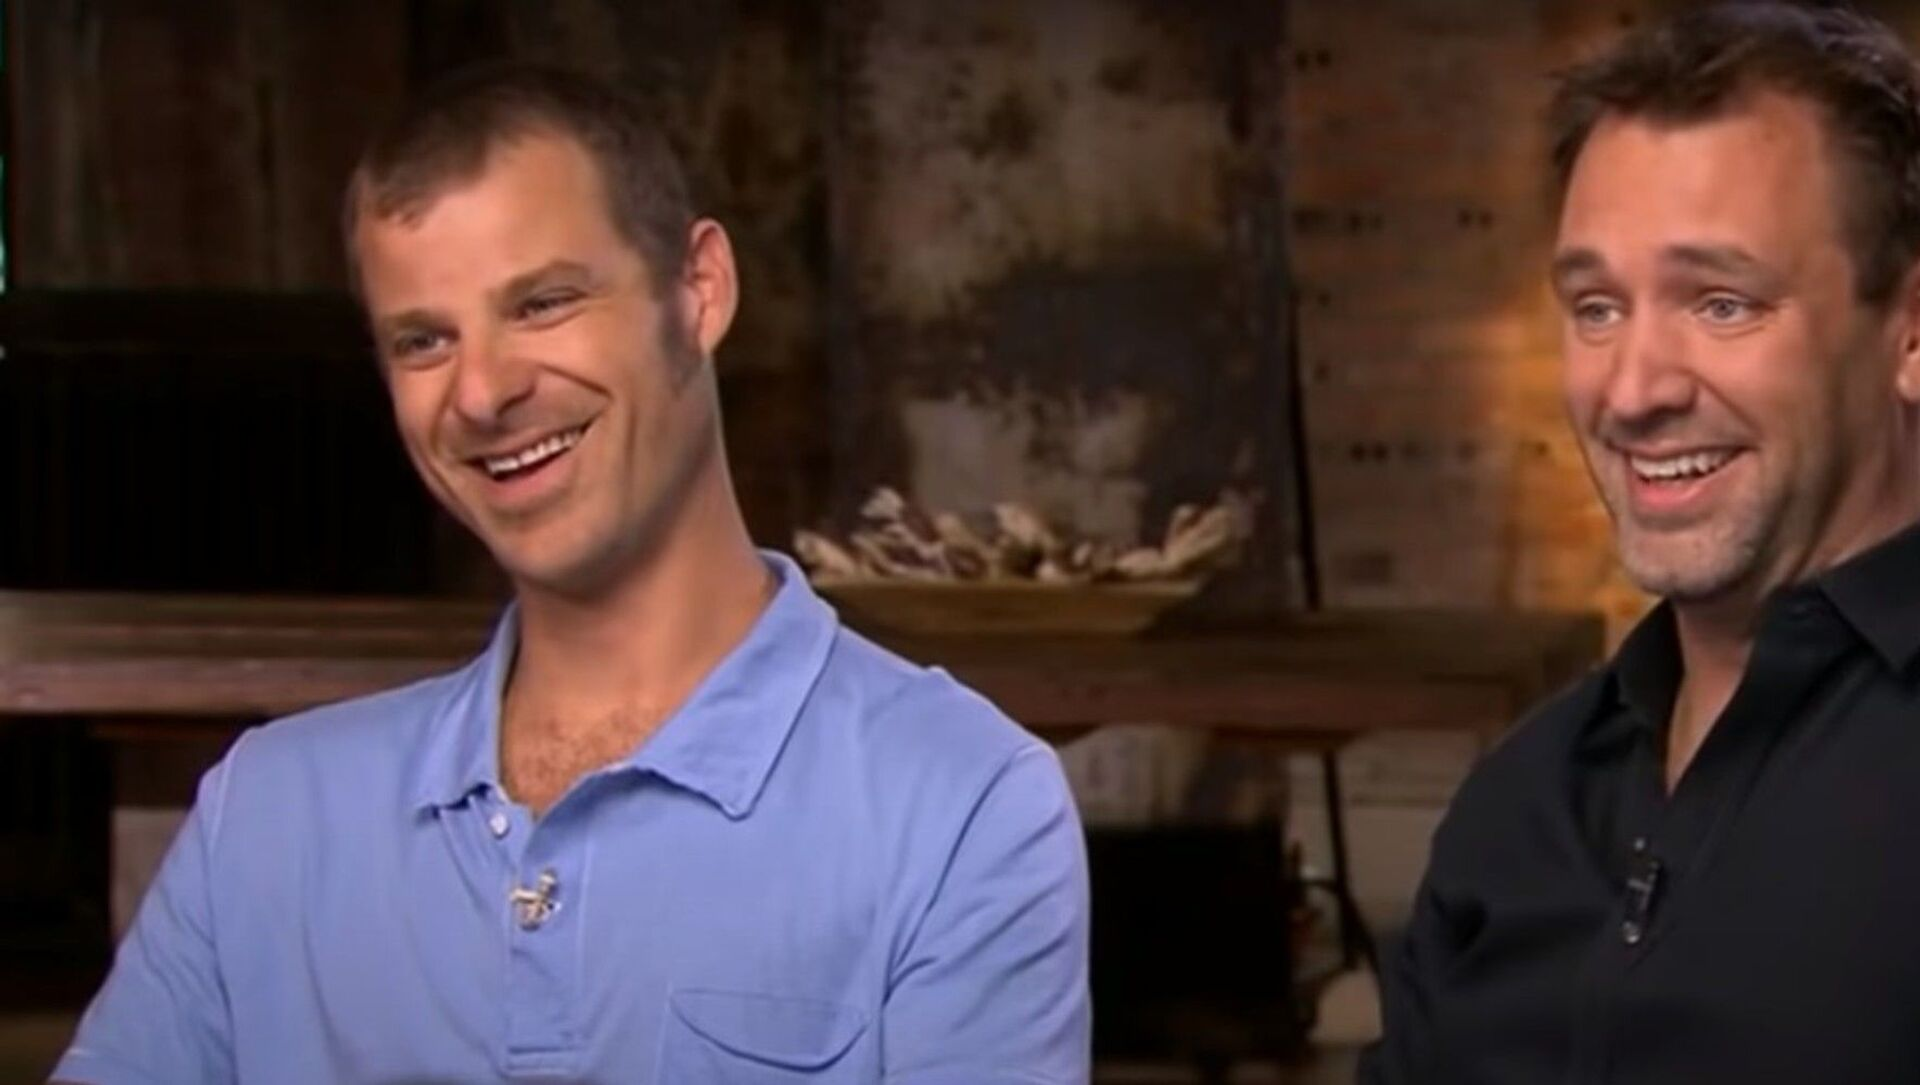 """Screenshot captures Matt Stone and Trey Parker, the creators of adult American animated series """"South Park,"""" during an interview on CBS' 60 Minutes show. - Sputnik International, 1920, 29.07.2021"""